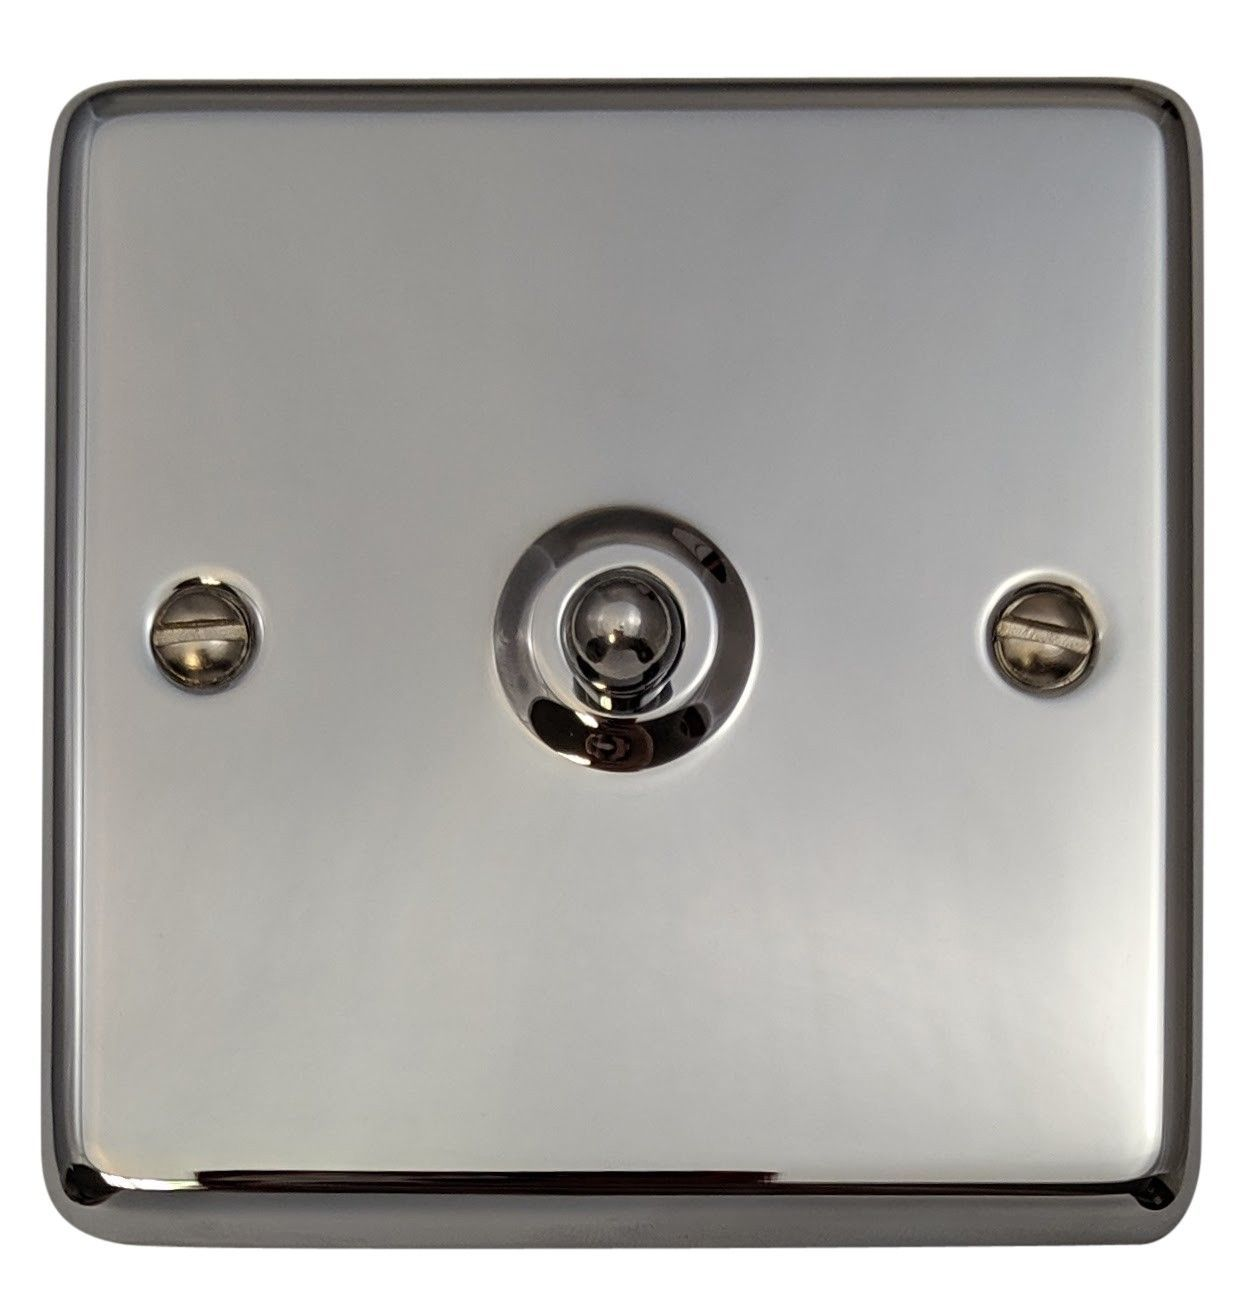 G&H CC281 Standard Plate Polished Chrome 1 Gang 1 or 2 Way Toggle Light Switch